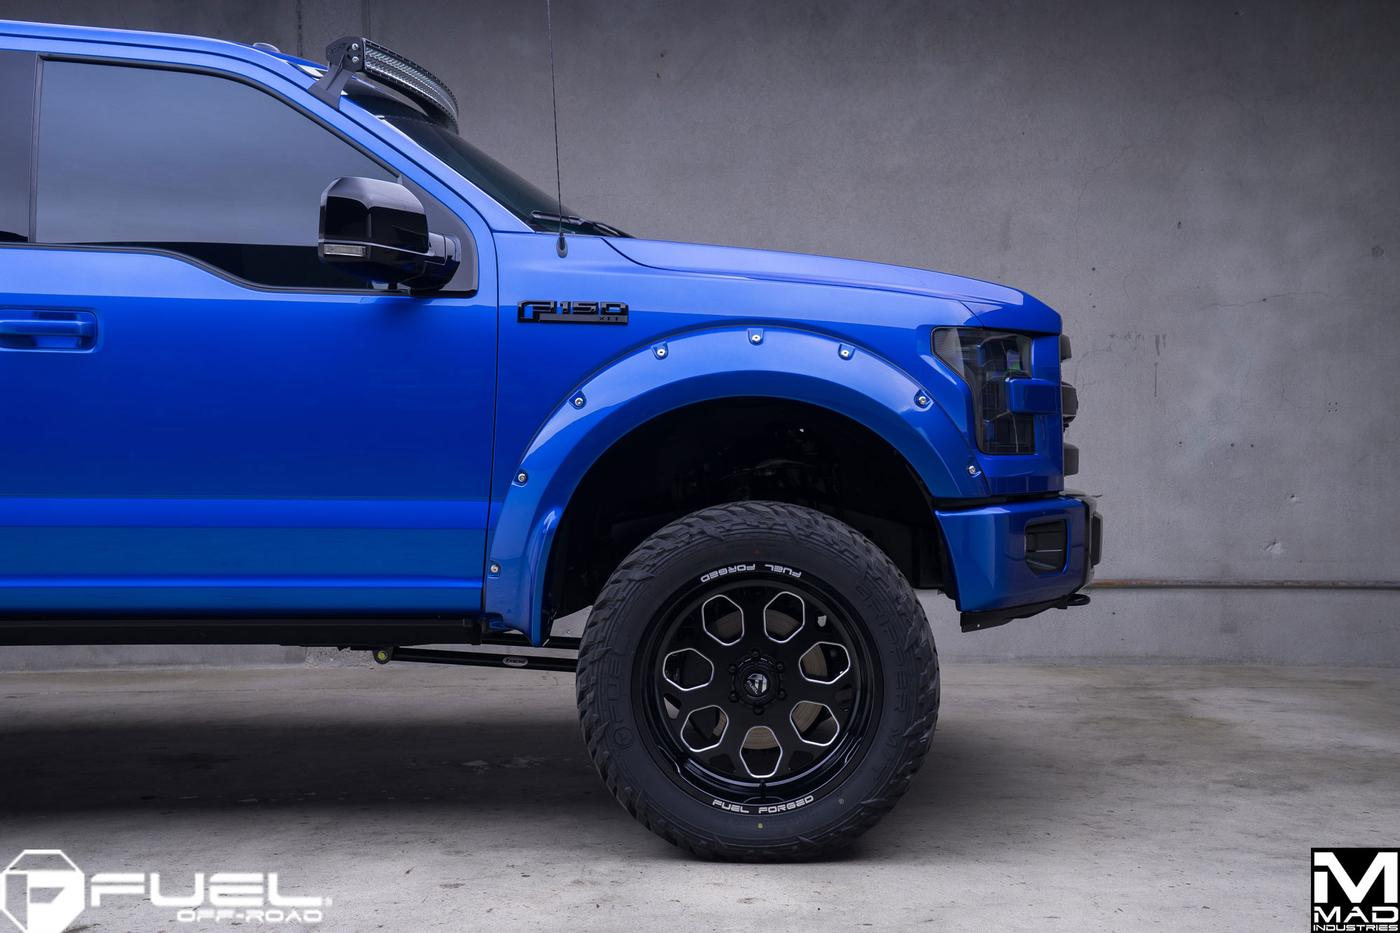 Mad Ind F150 Build Fuel Off Road Wheels